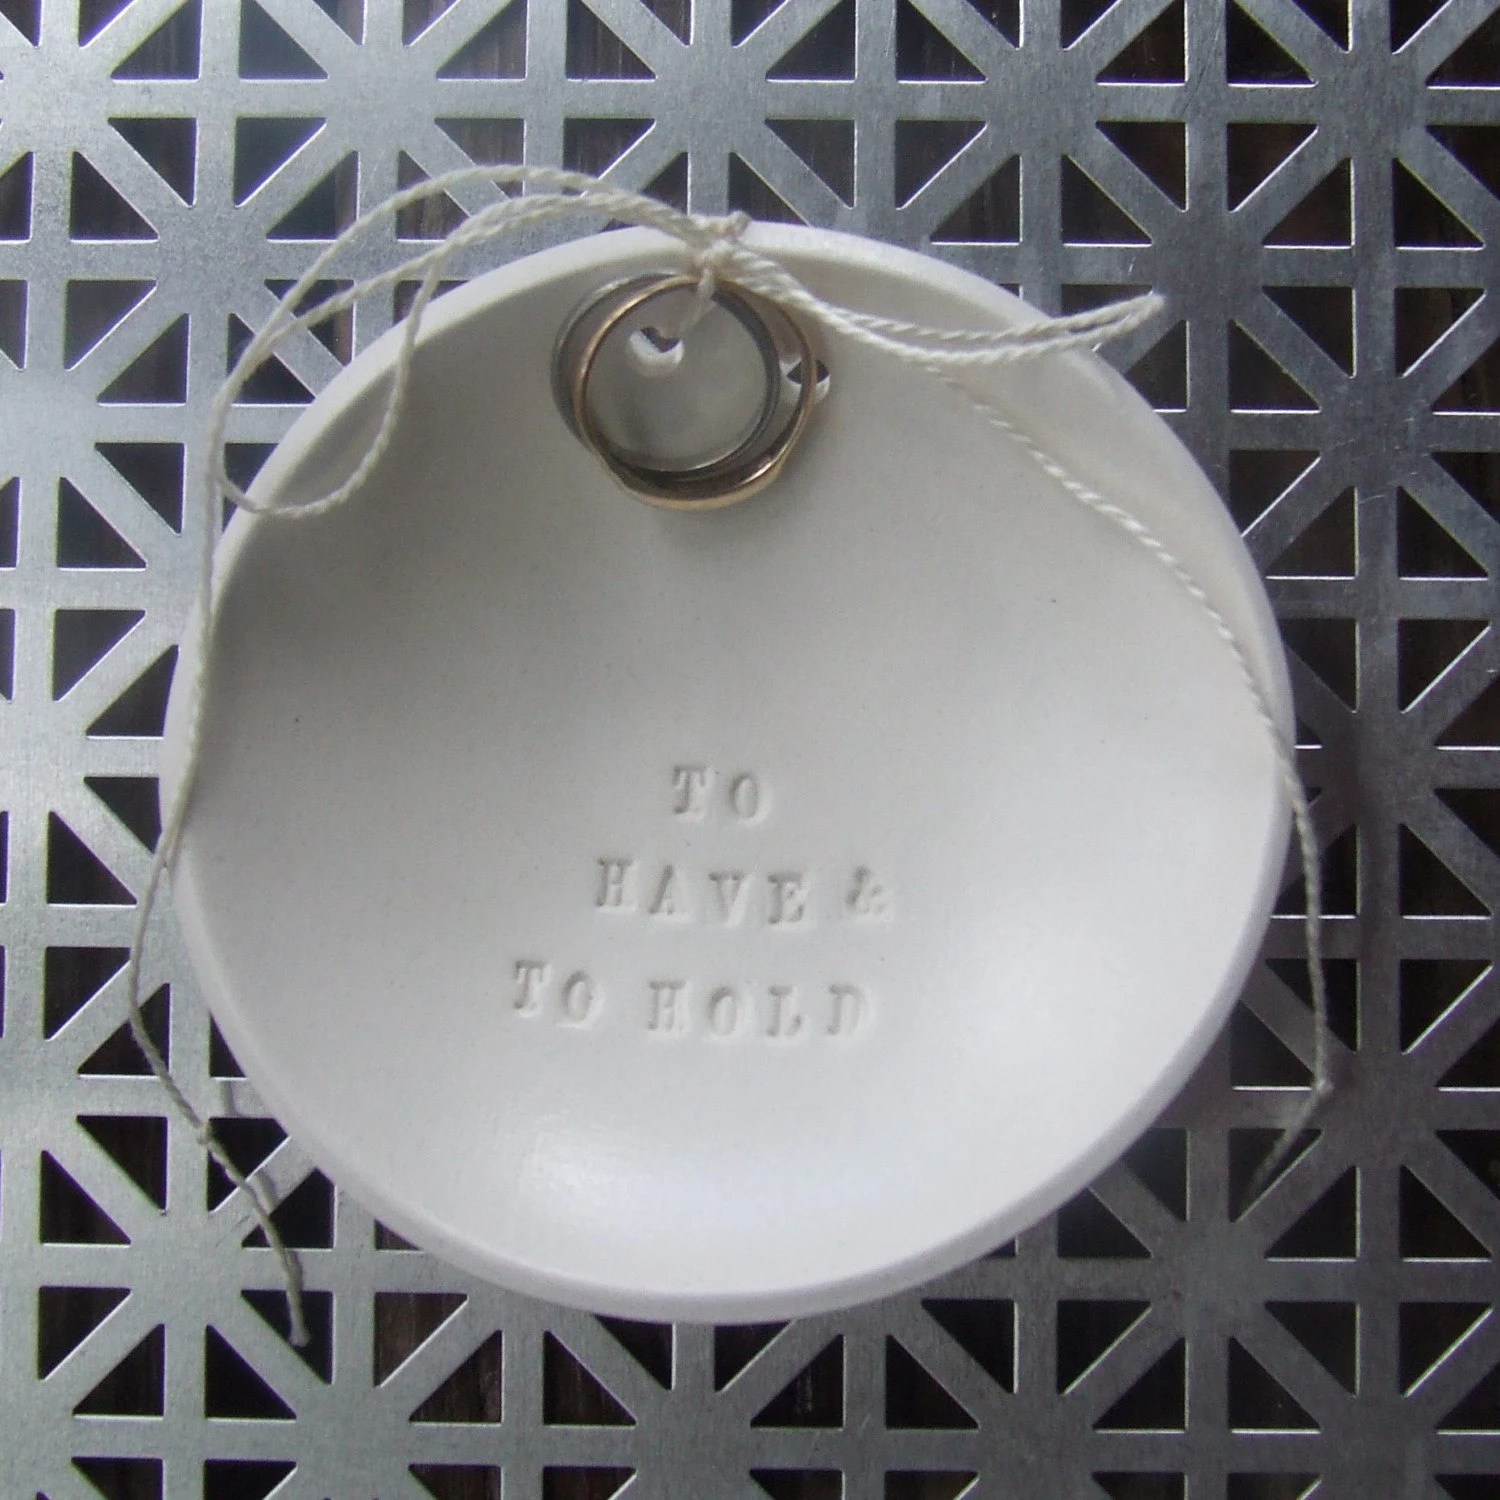 TO HAVE AND TO HOLD ring bowl with tiny text - wedding or commitment ceremony